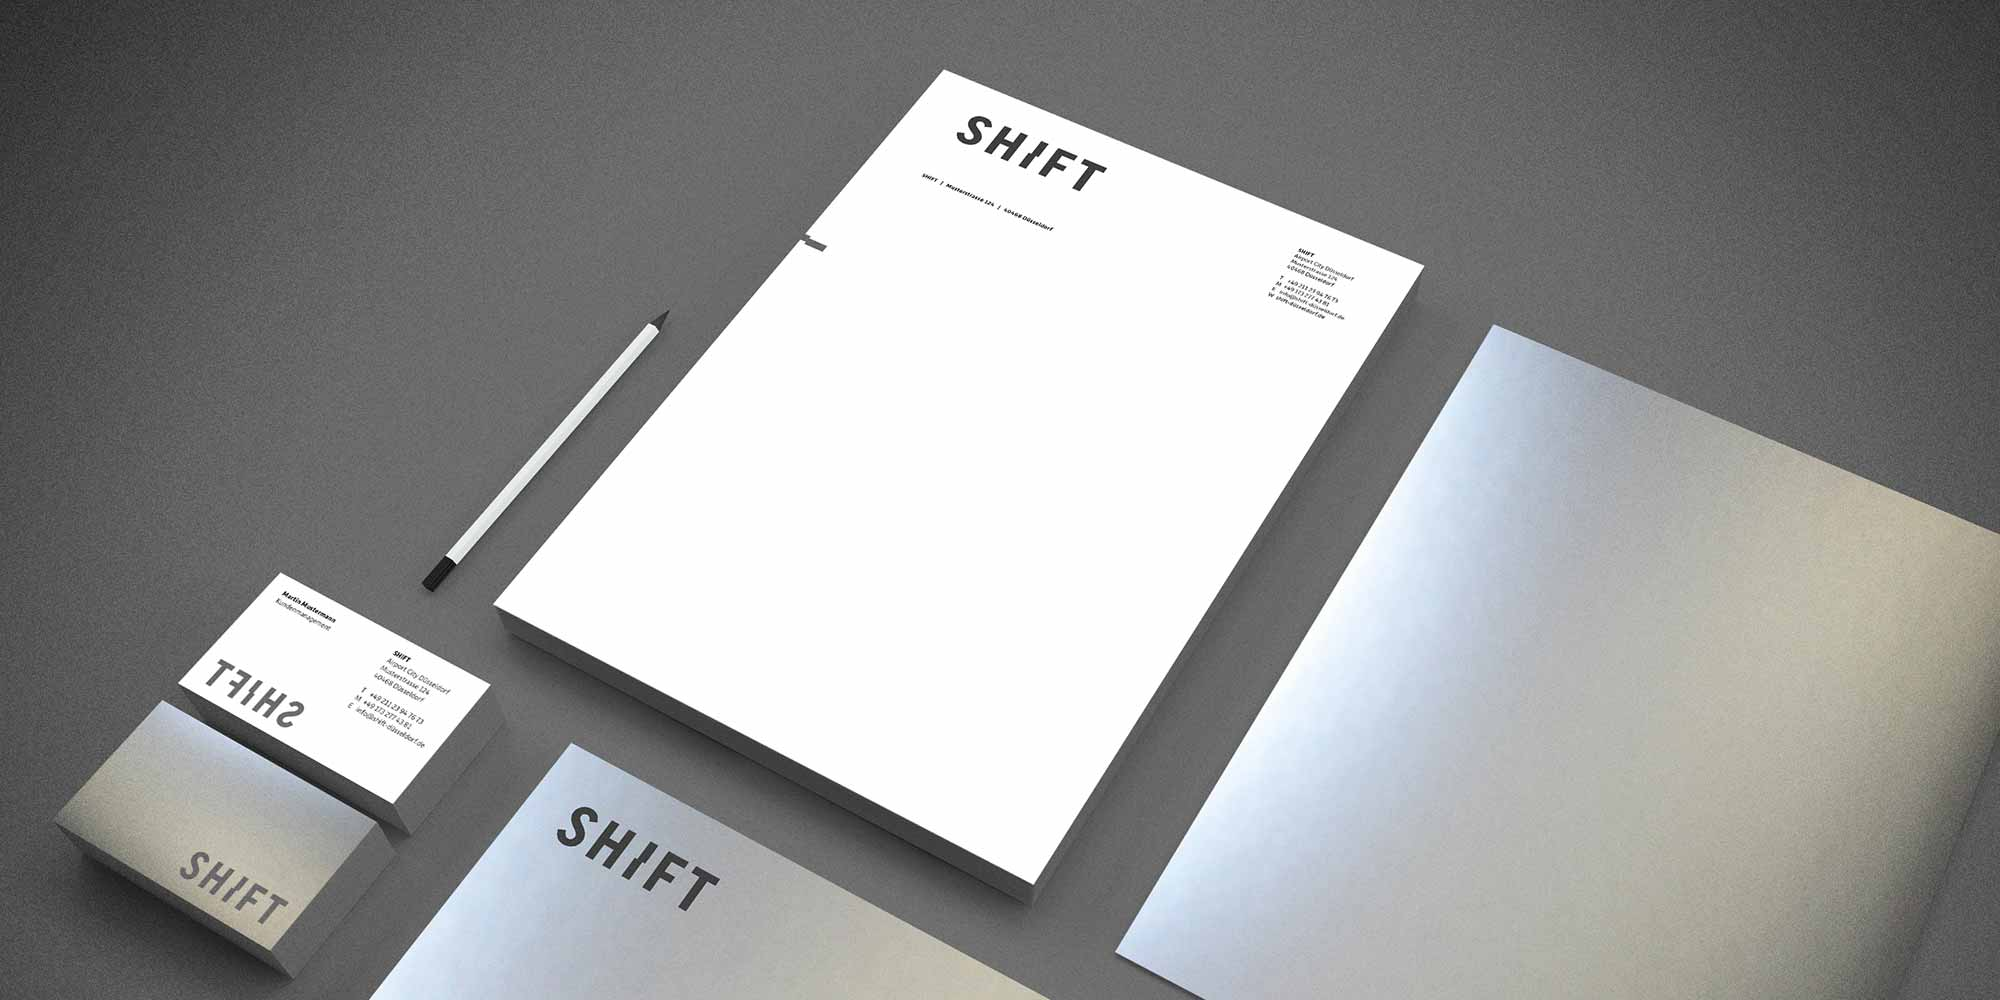 SHIFT Paper Design